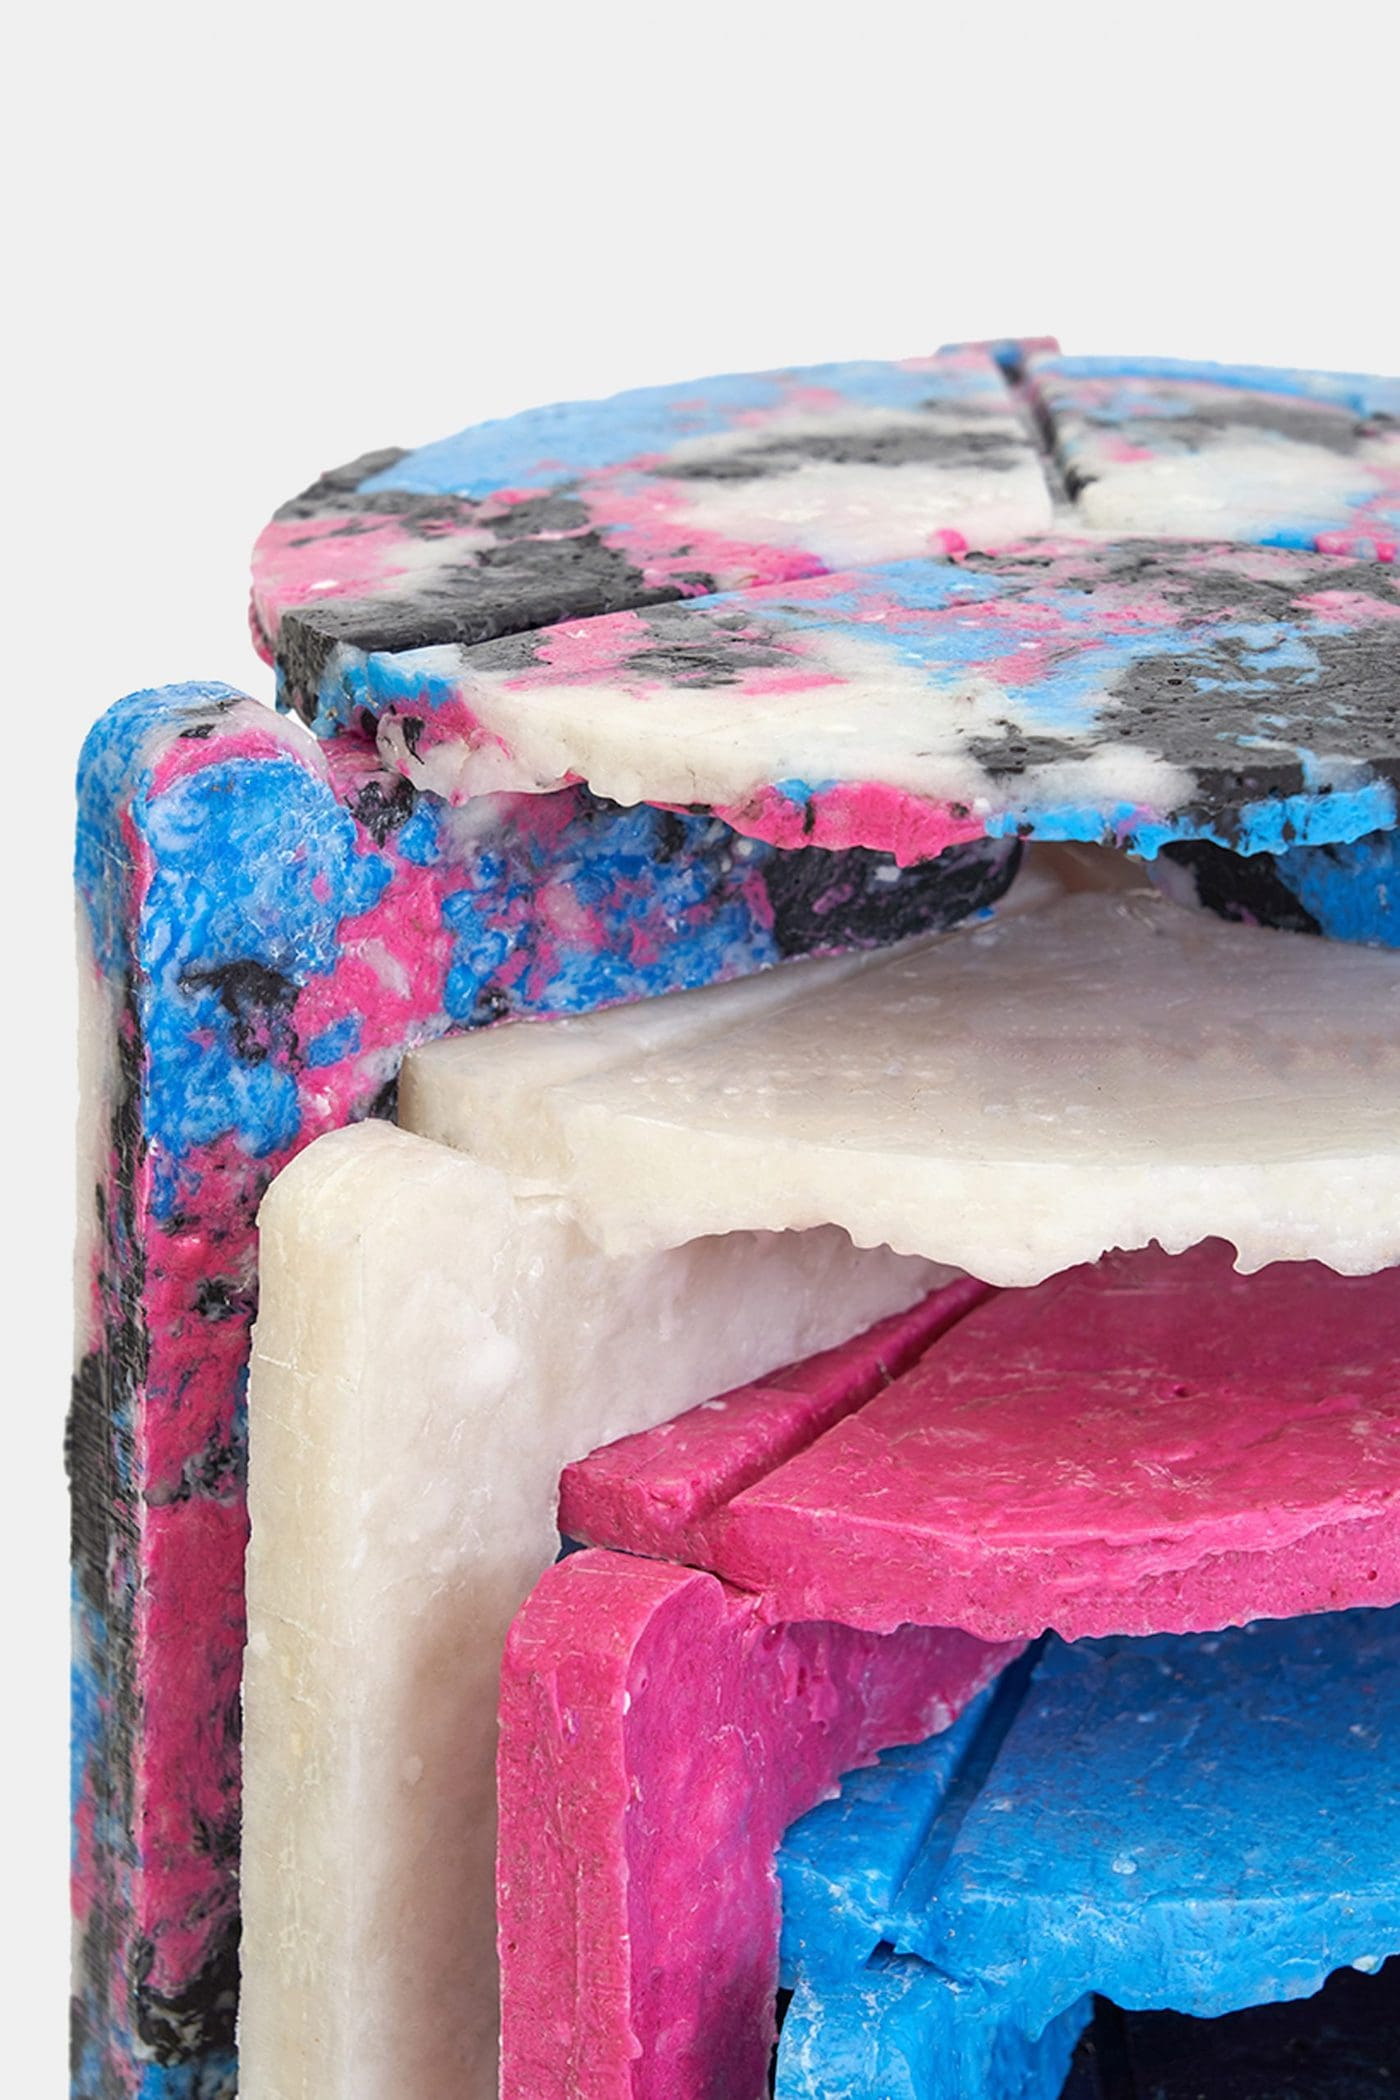 Colourful stools made from face masks